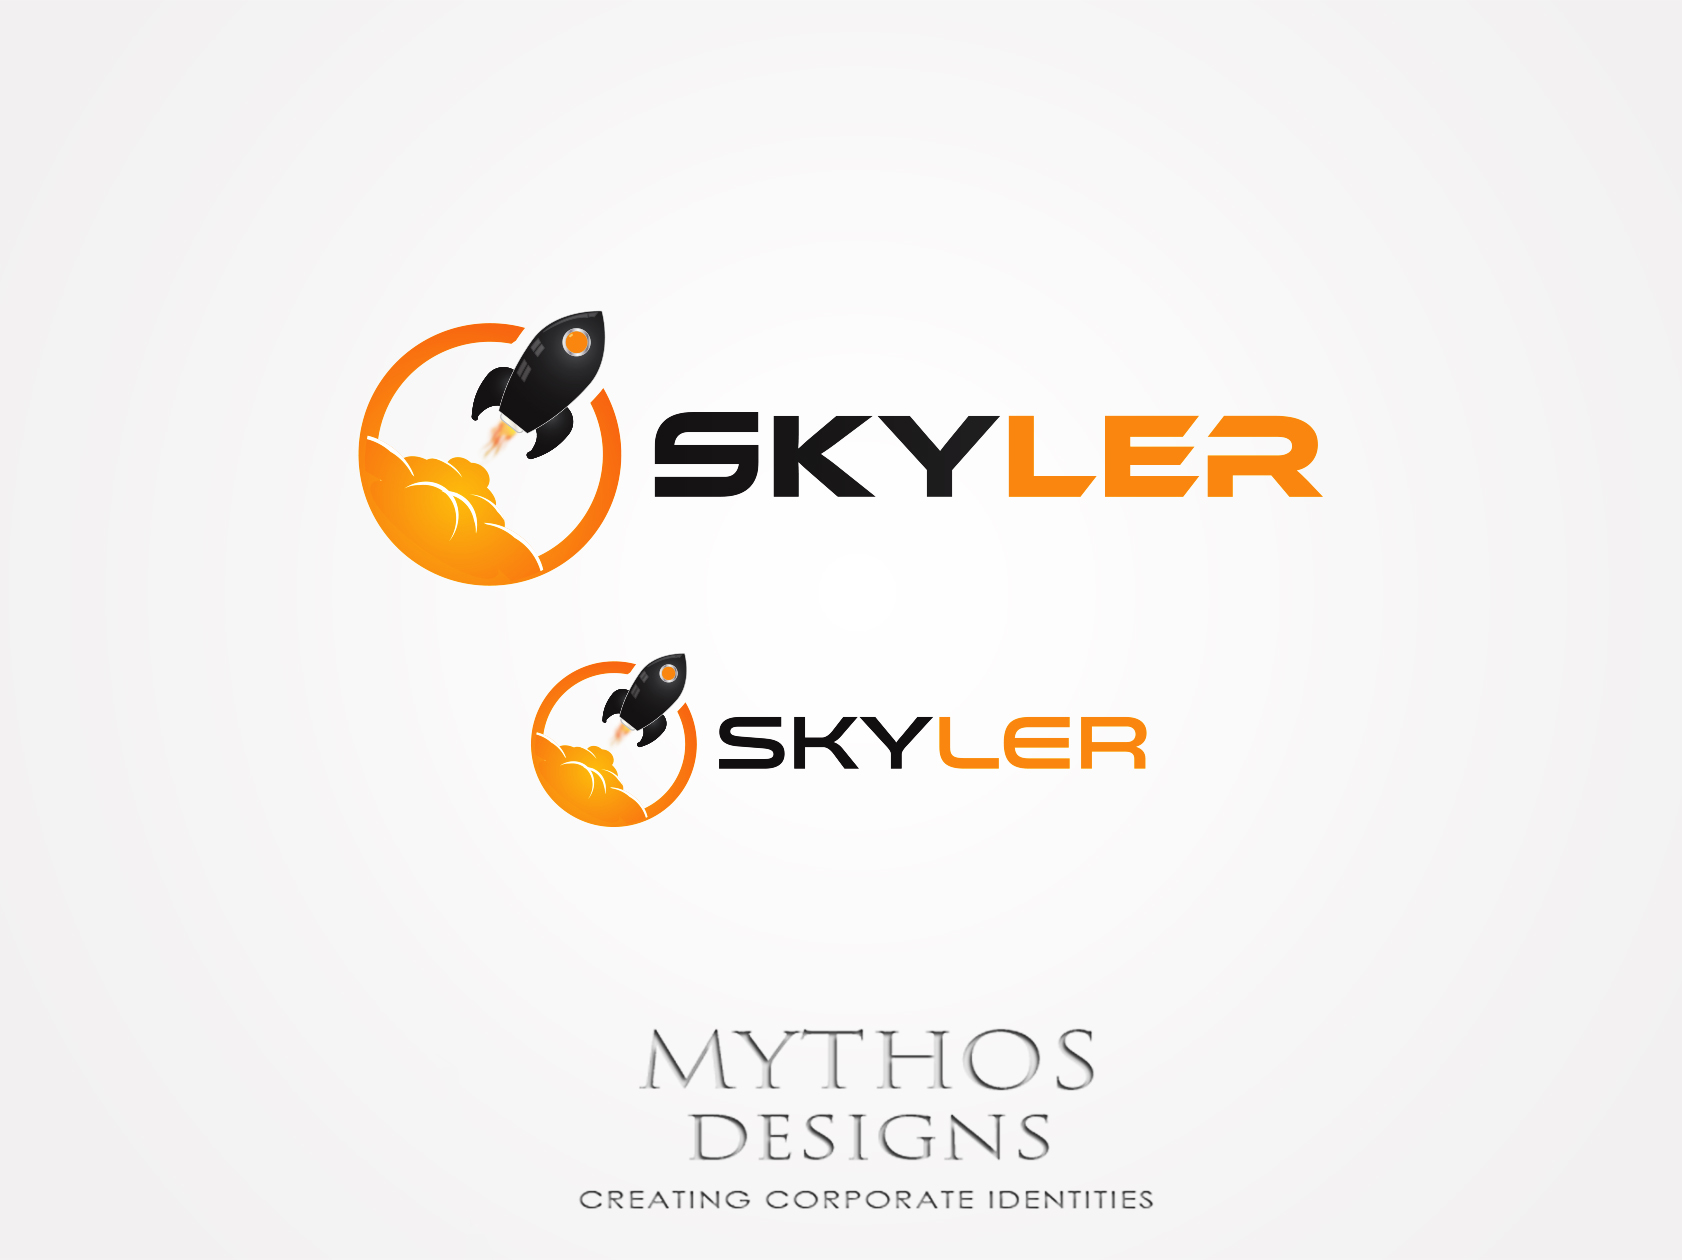 Logo Design by Mythos Designs - Entry No. 146 in the Logo Design Contest Artistic Logo Design for Skyler.Asia.